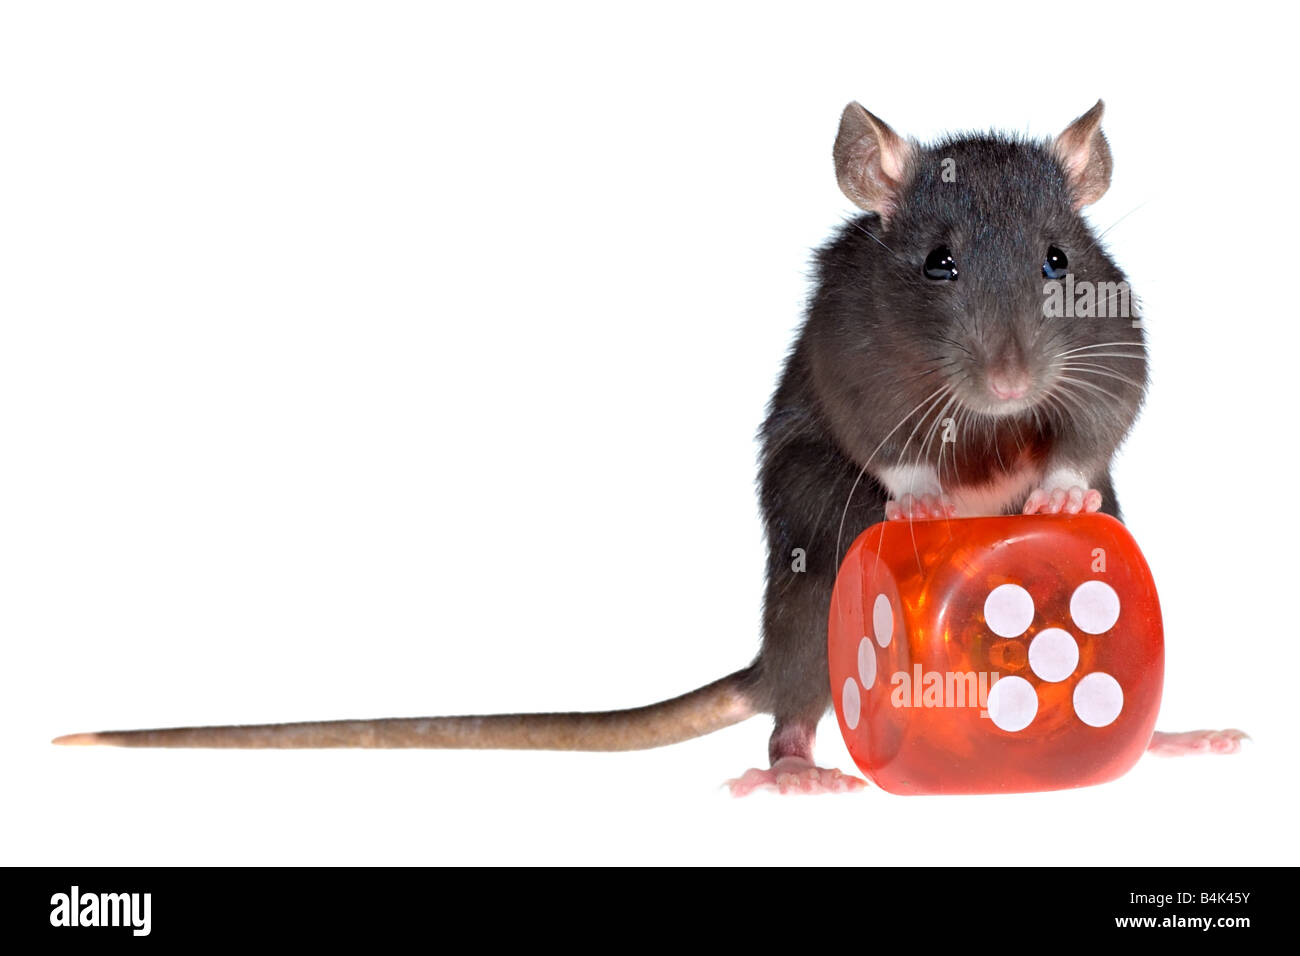 funny rat with red dice in paws - Stock Image